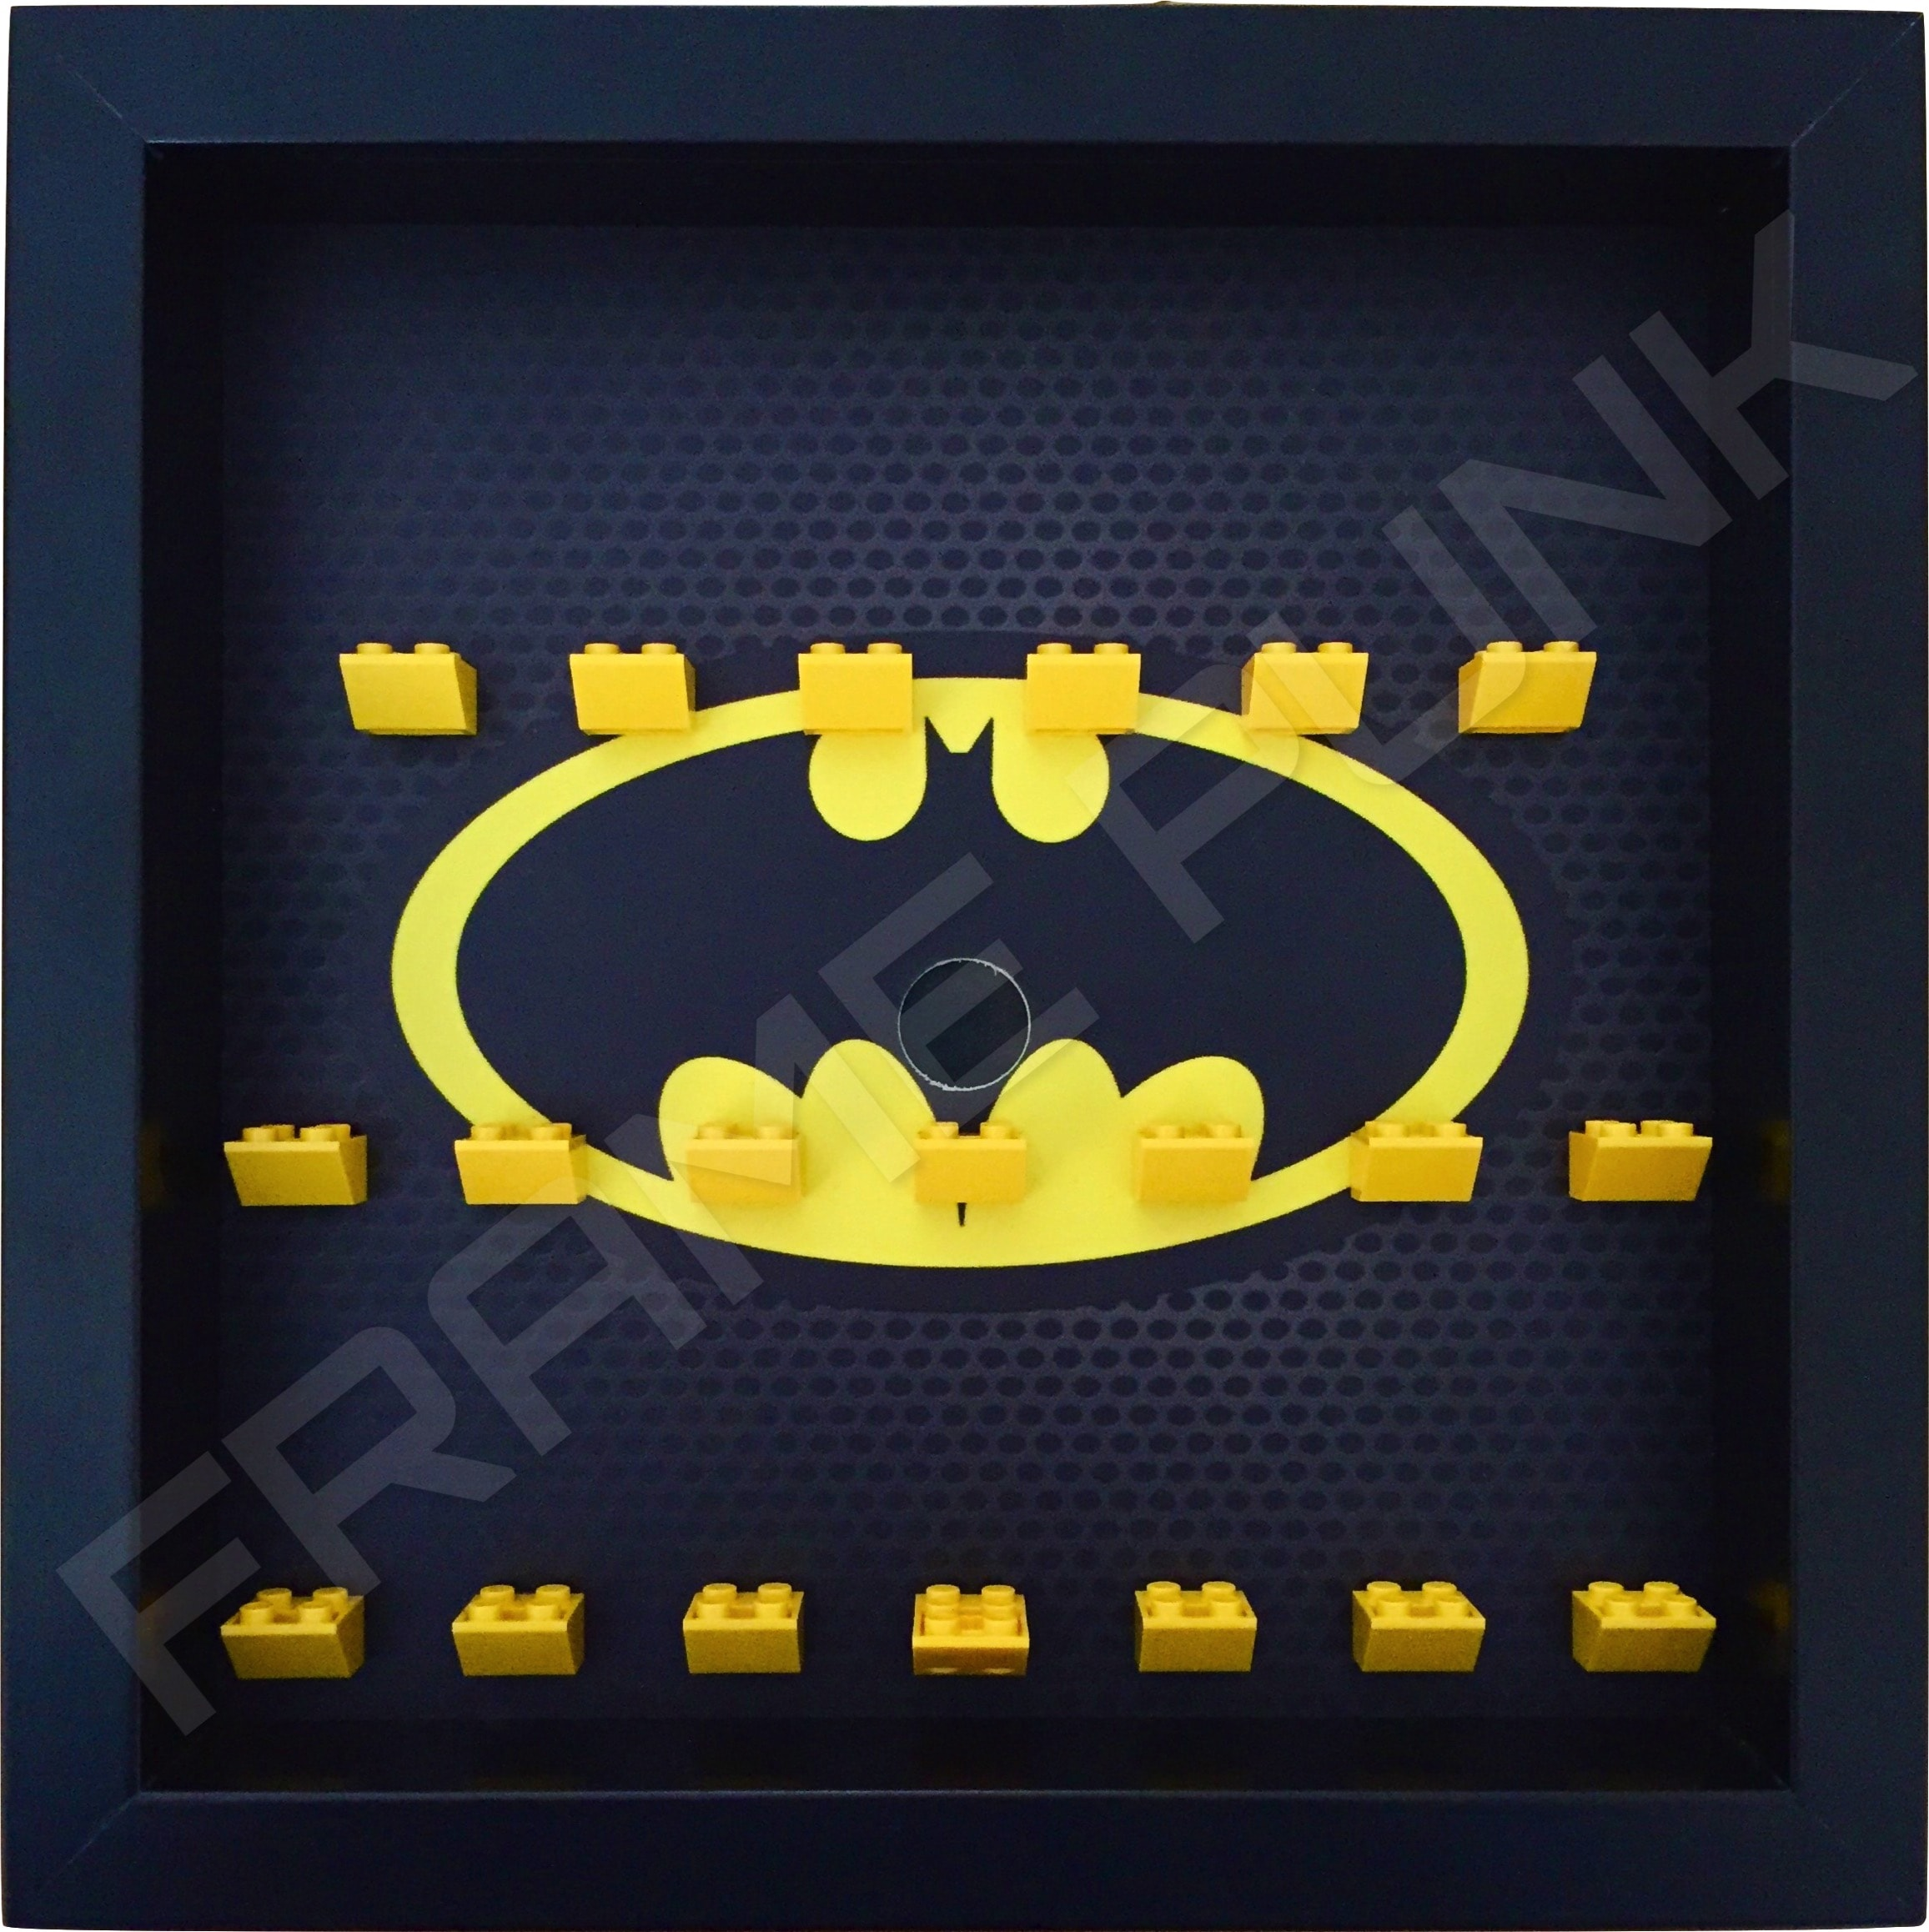 classic lego batman movie minifigures series display frame black